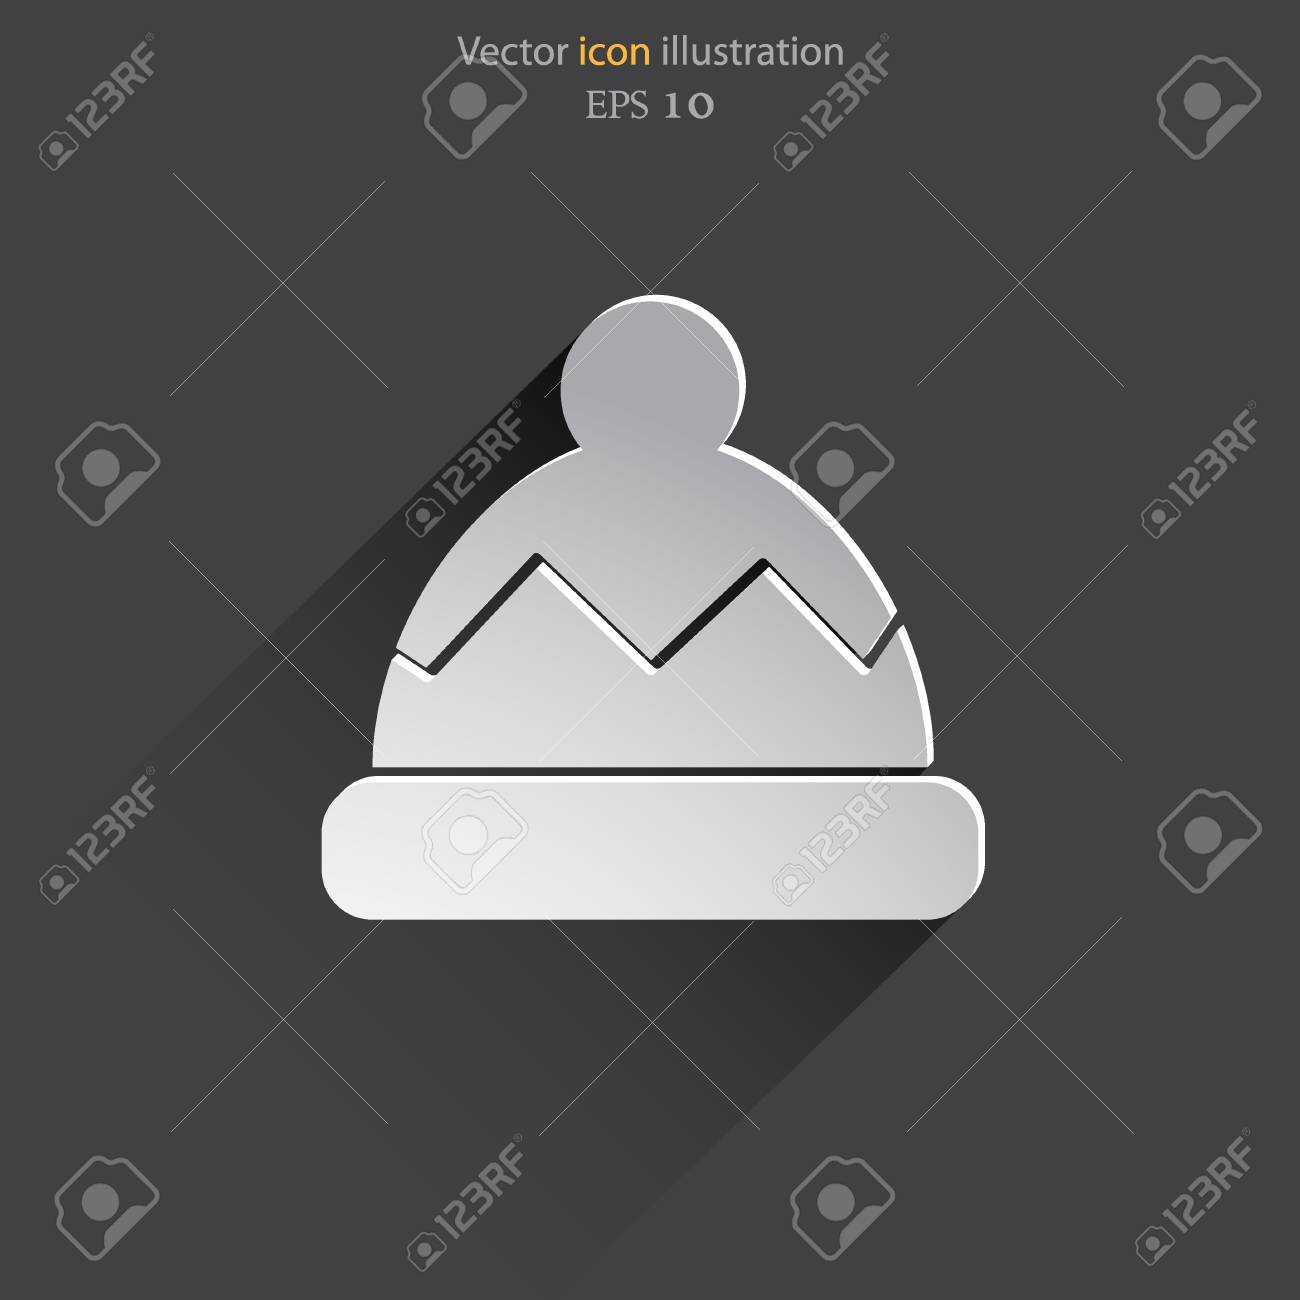 Vector Winter Cap Web Flat Icon. Royalty Free Cliparts a3289c37580